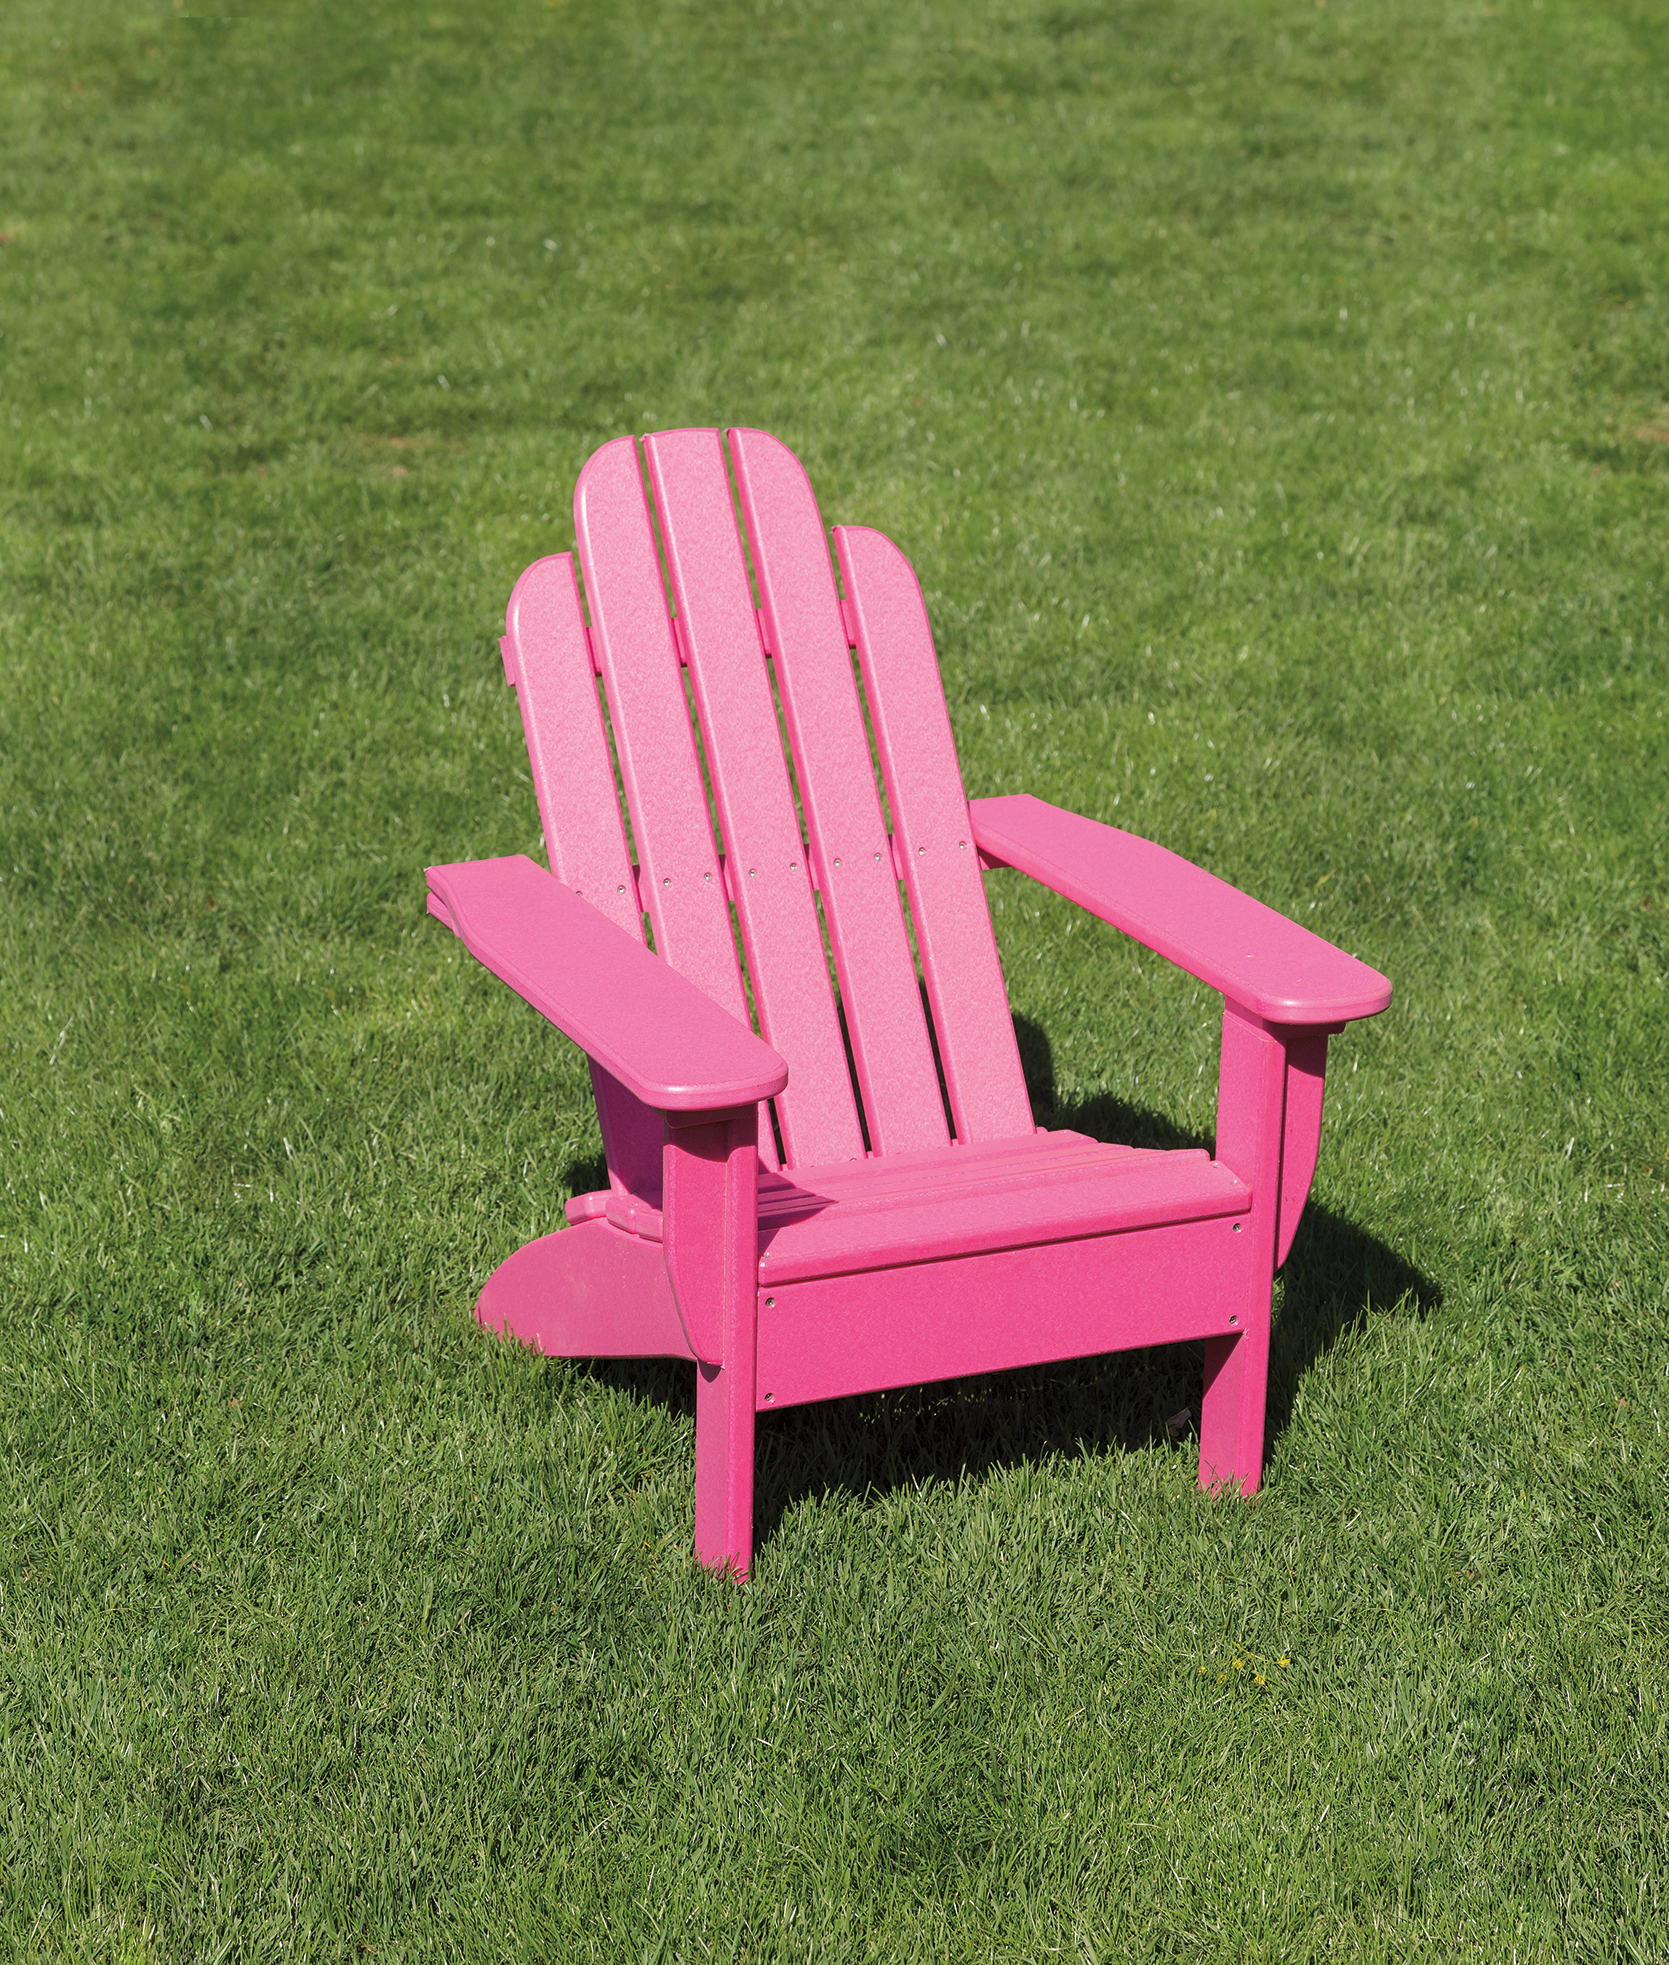 Kids ADK Chair. Made in USA & Kids Adirondack Chair - This u0026 That 4 You | 888.299.6190